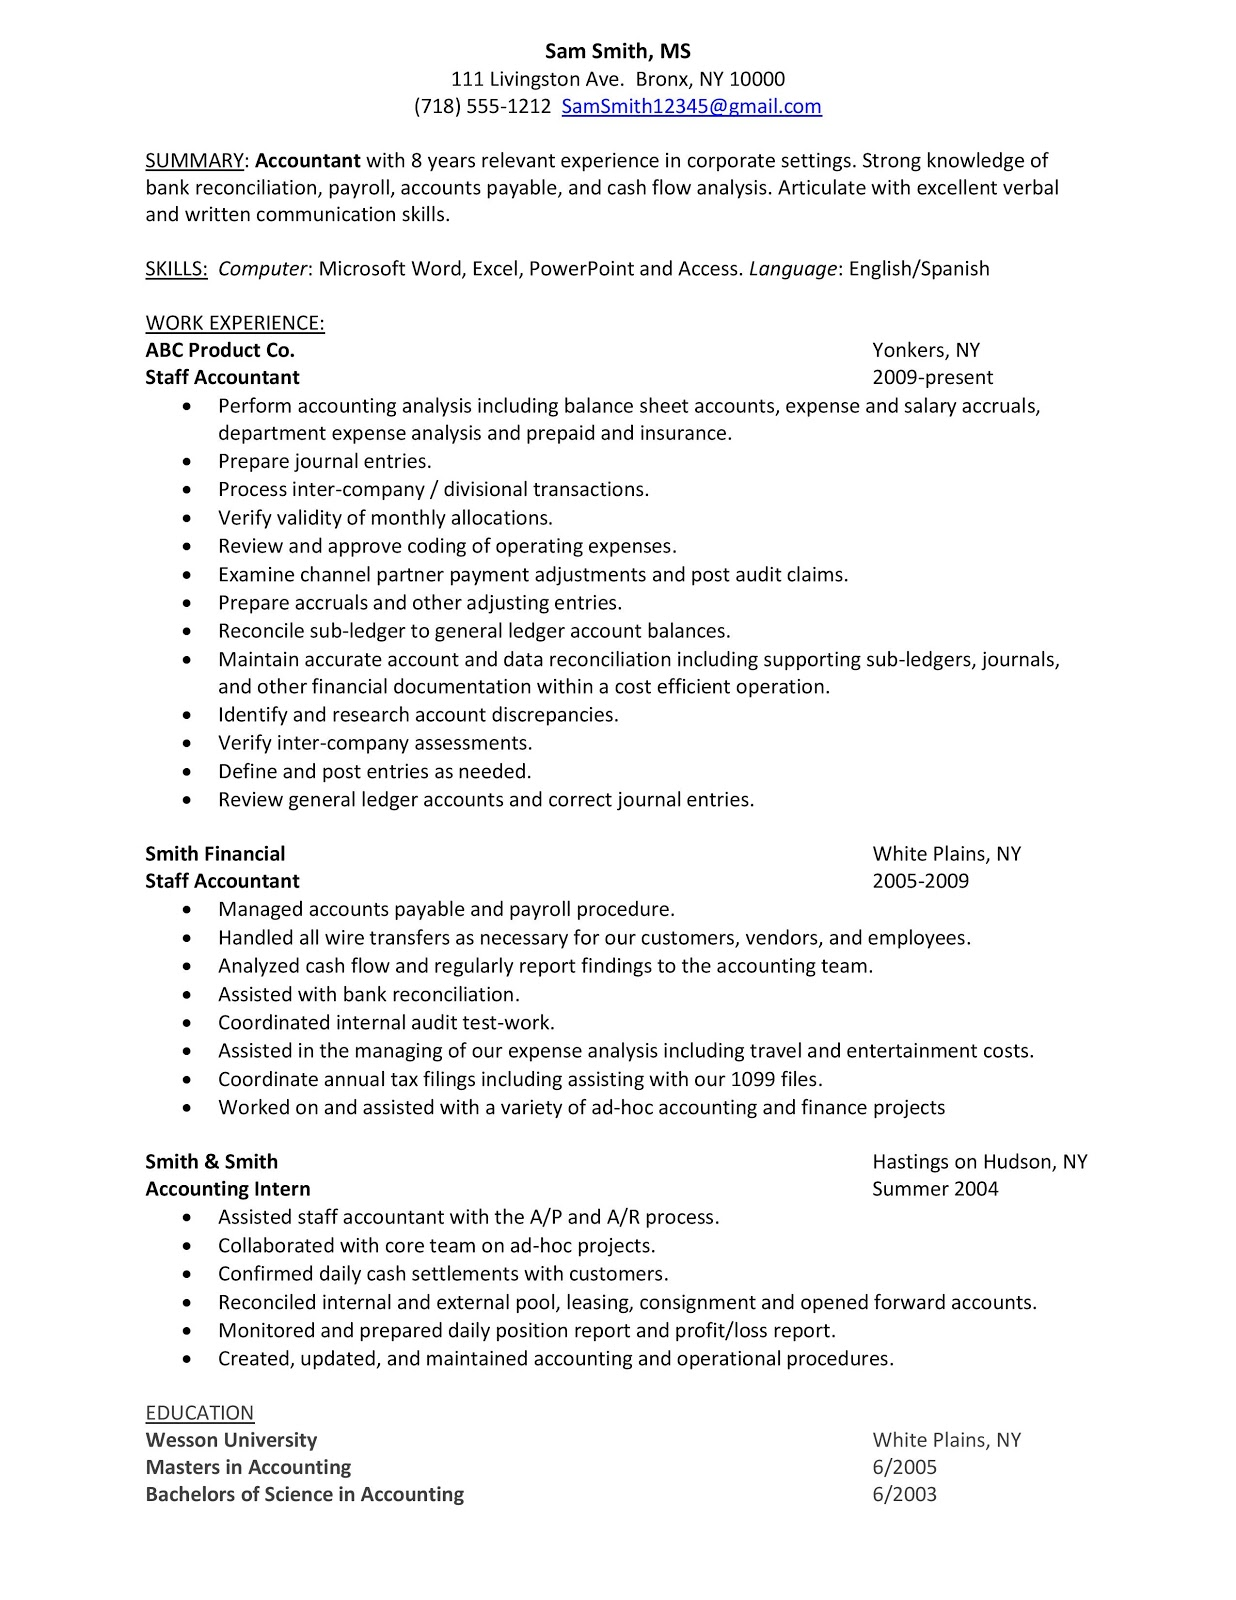 Sample Resume: Staff Accountant